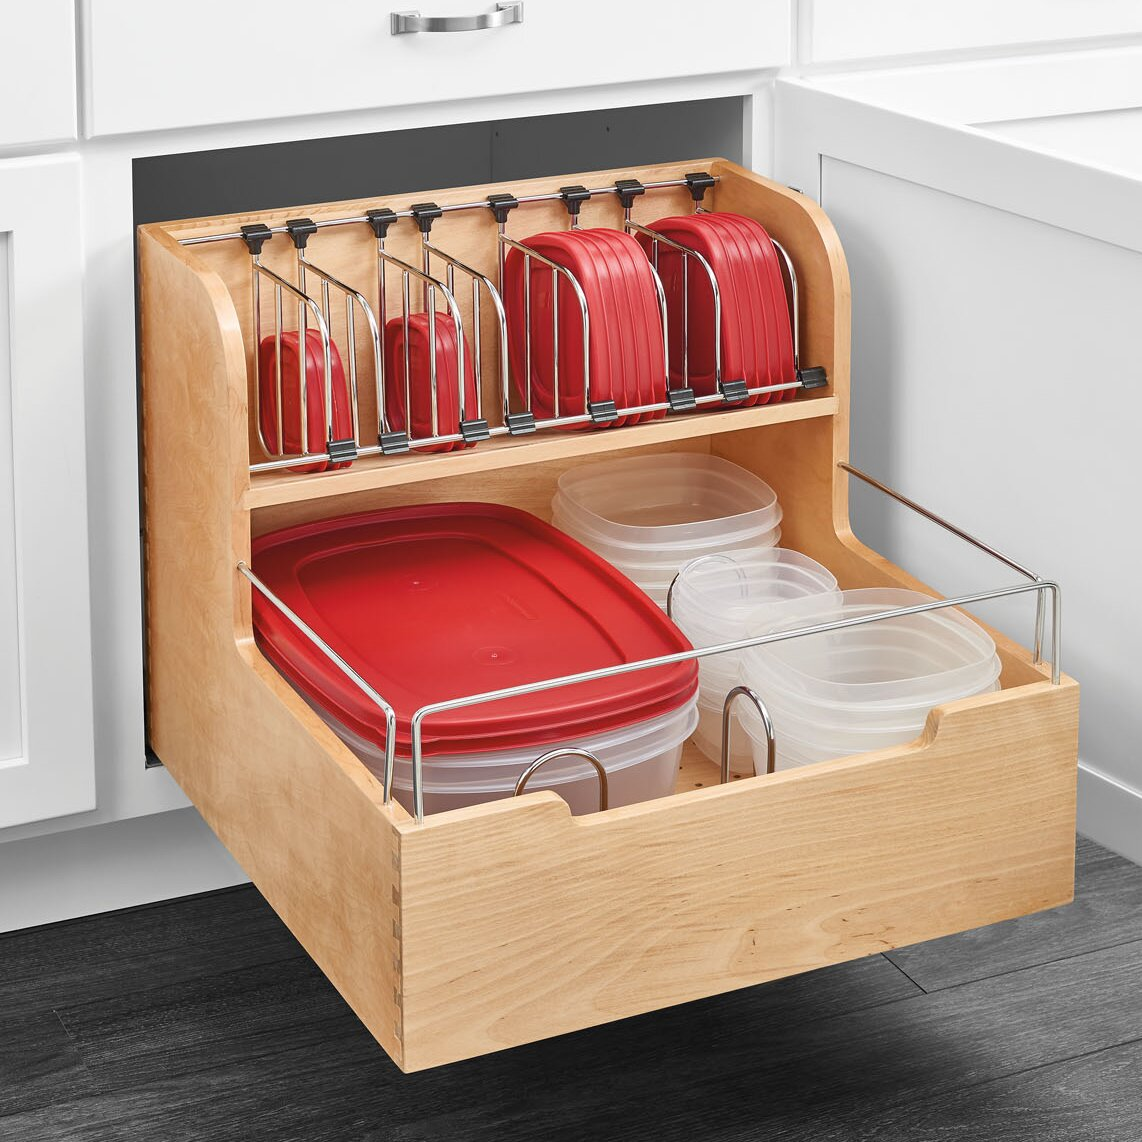 Rev a shelf wood food storage container organizer for base for Kitchen cabinets 24x24